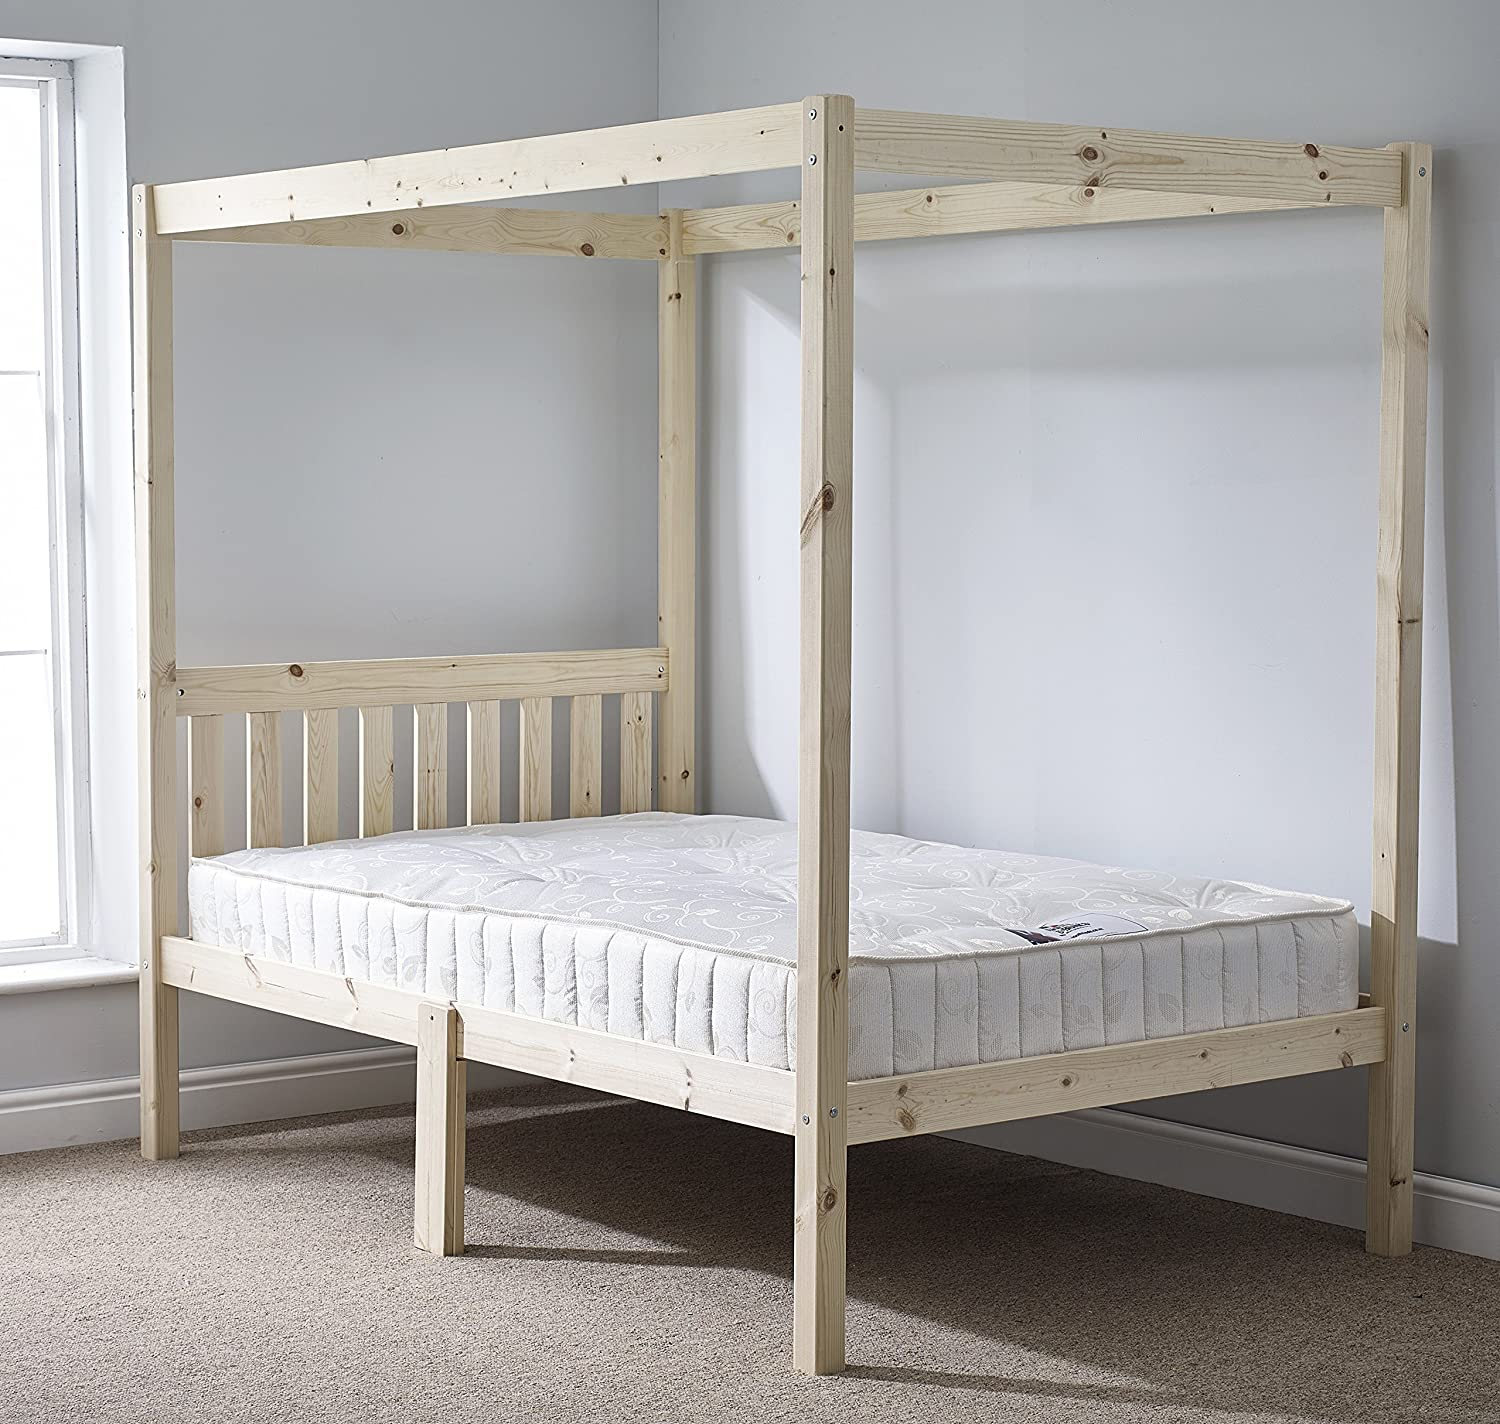 - Four Poster Bed - 4ft 6 Double Solid Natural Pine 4 Poster Bed